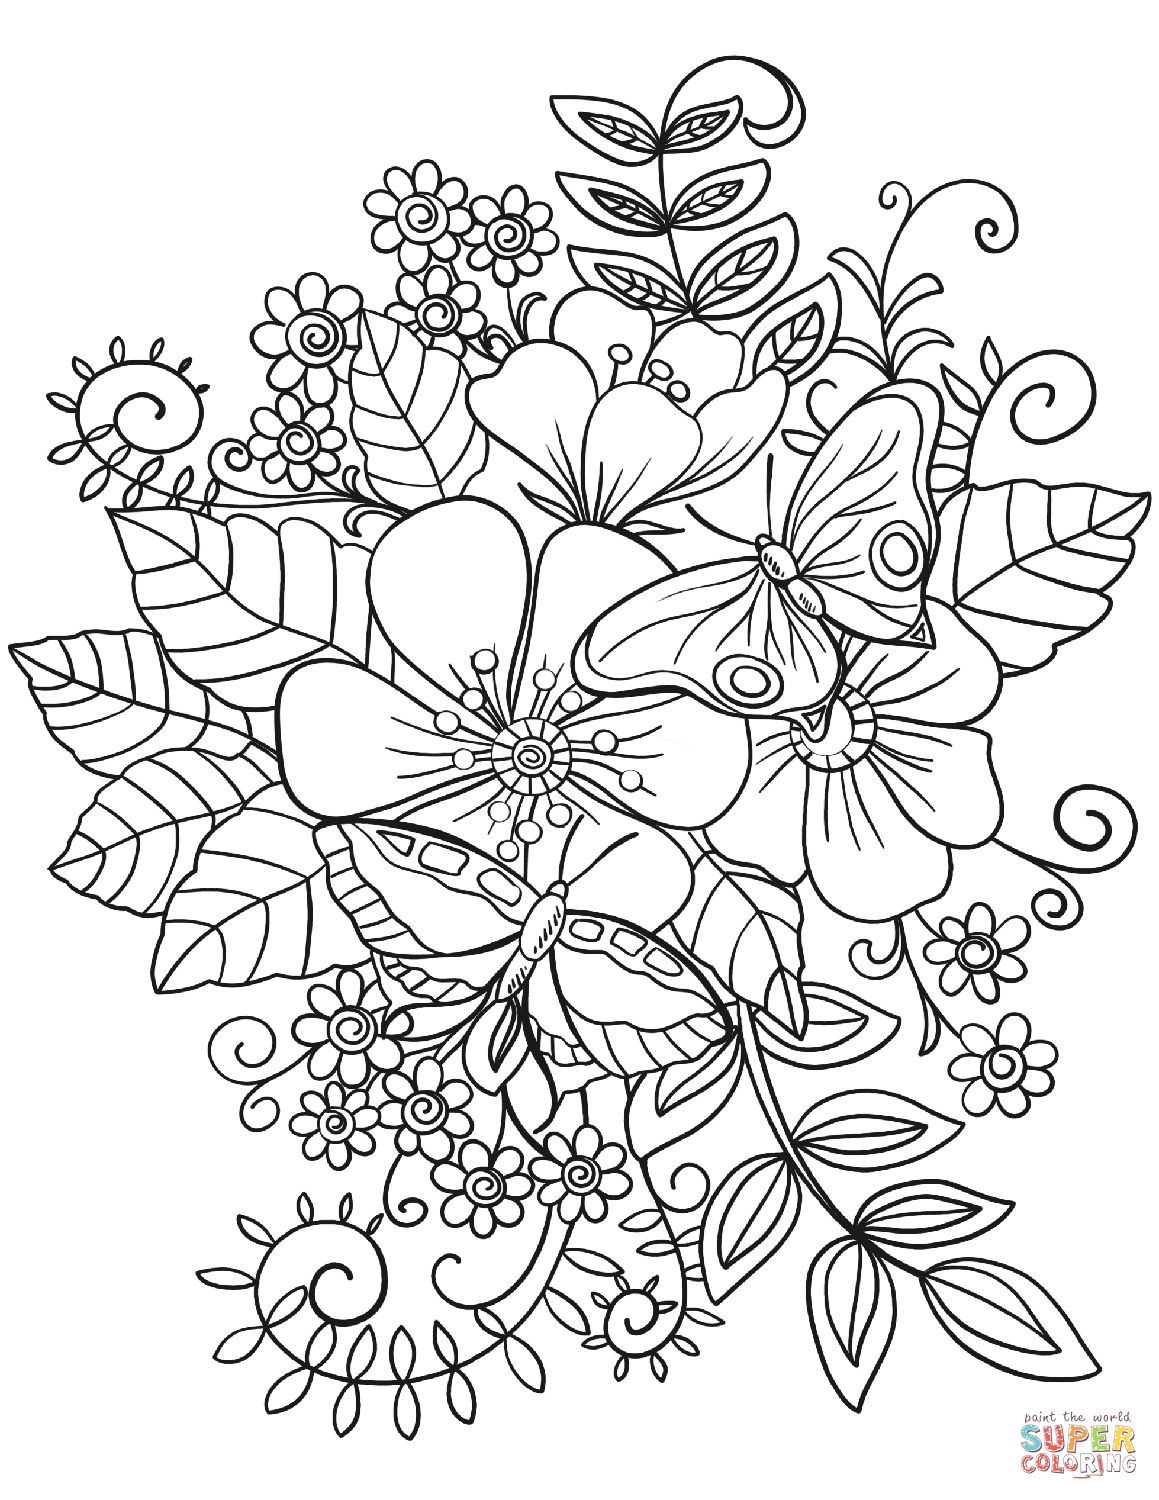 flower coloring sheet wild flowers coloring pages coloring home flower sheet coloring